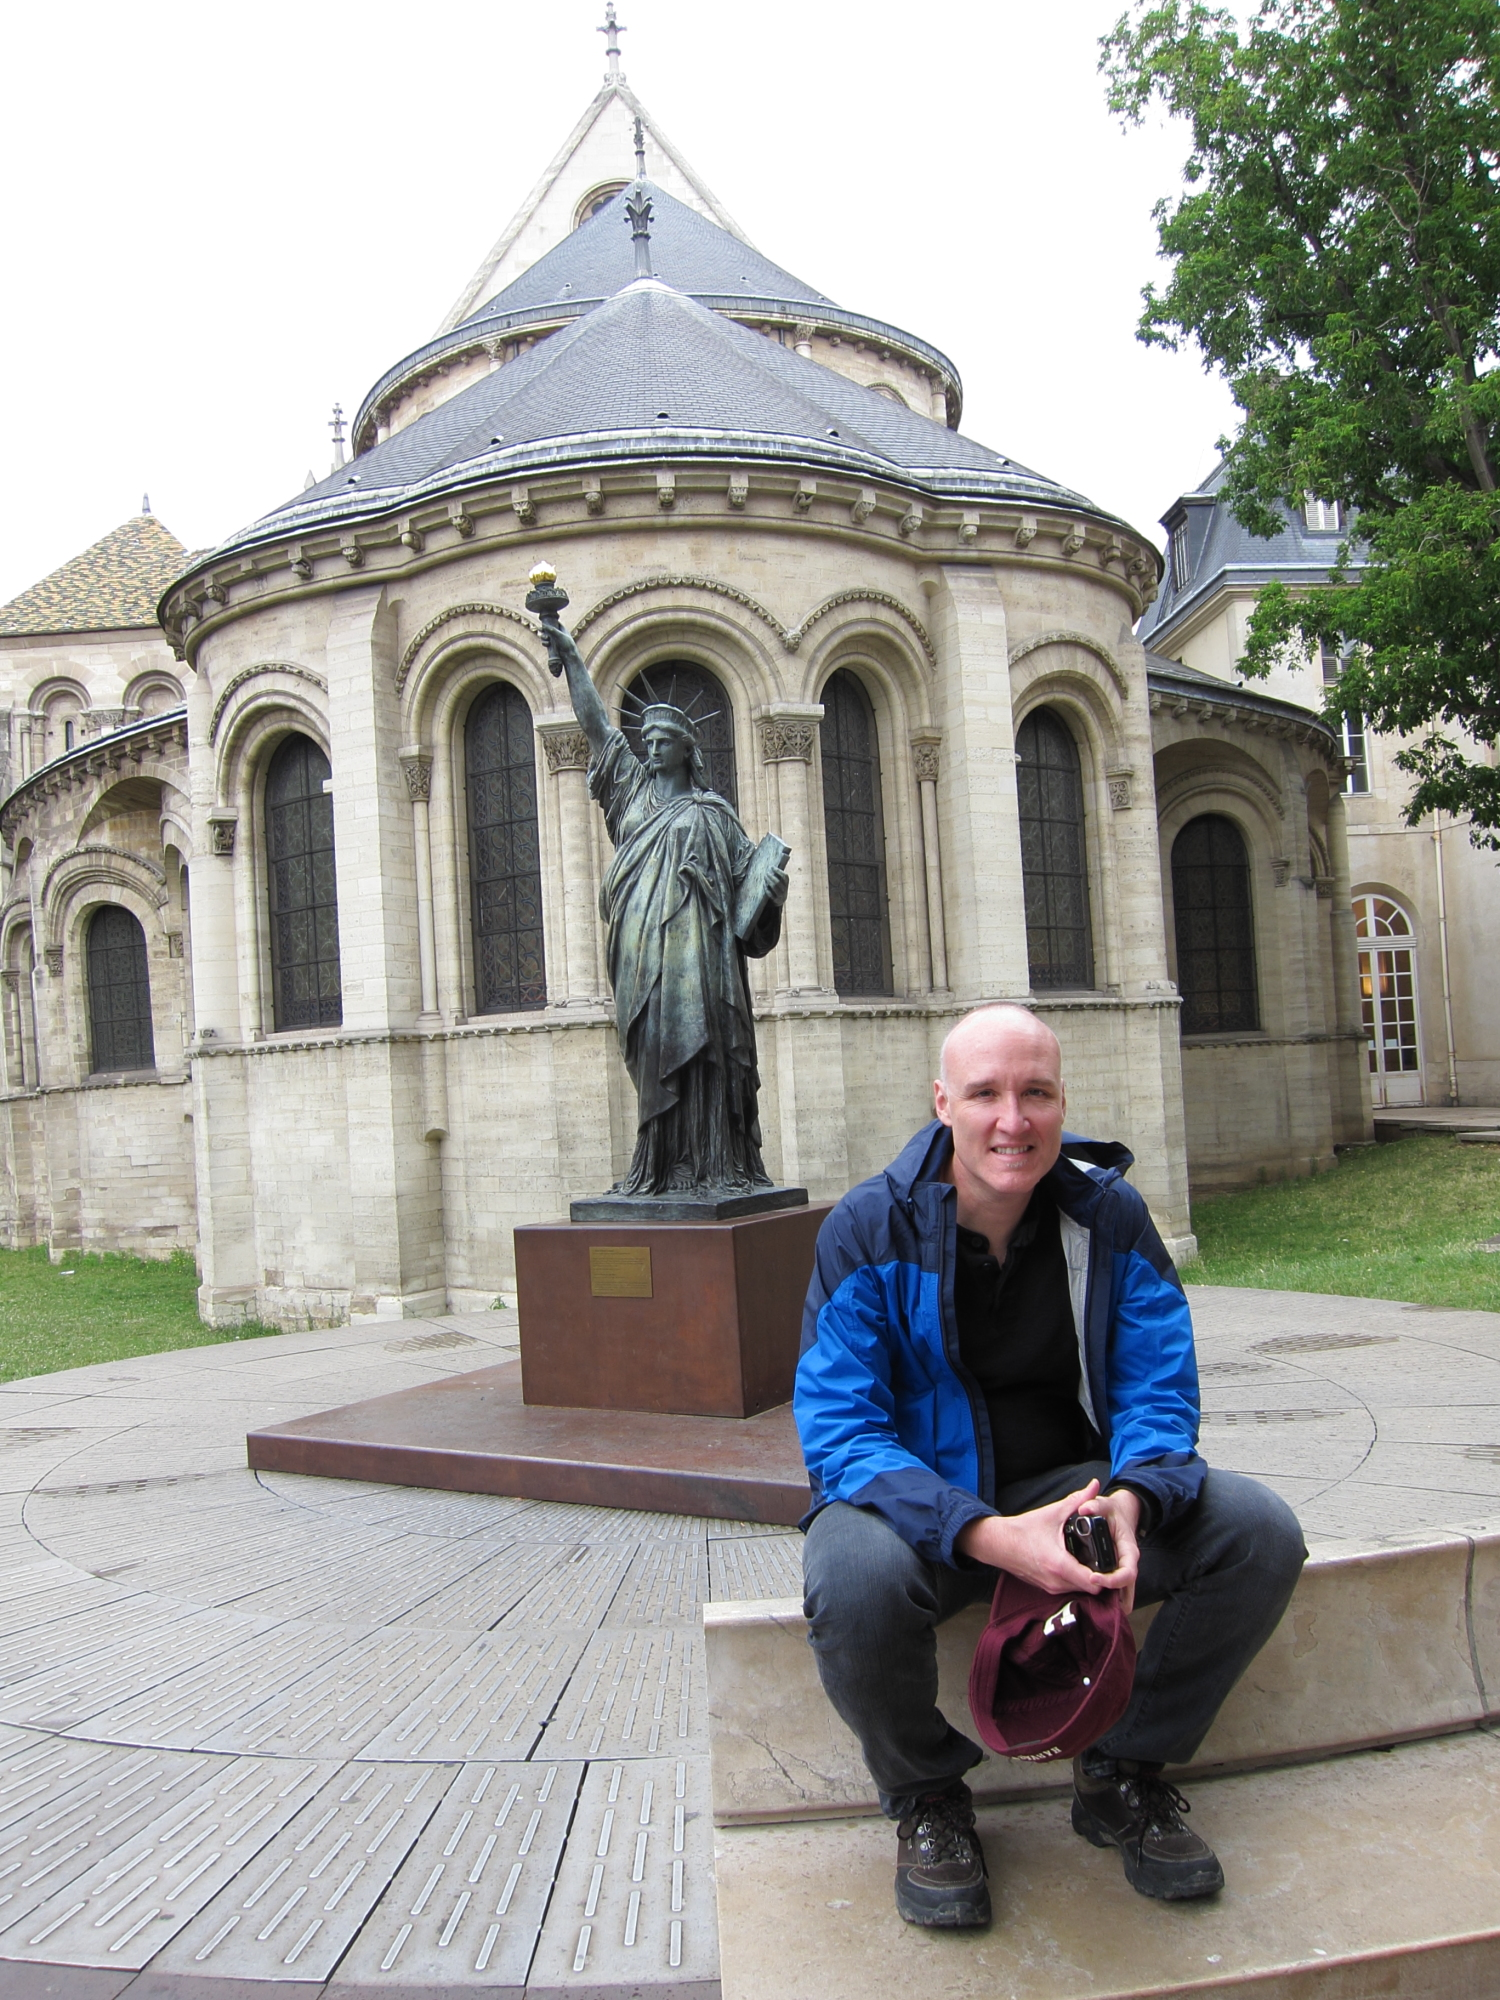 Jaime with a little statue of liberty at the Musée des Arts et Métiers, in a former abbey.